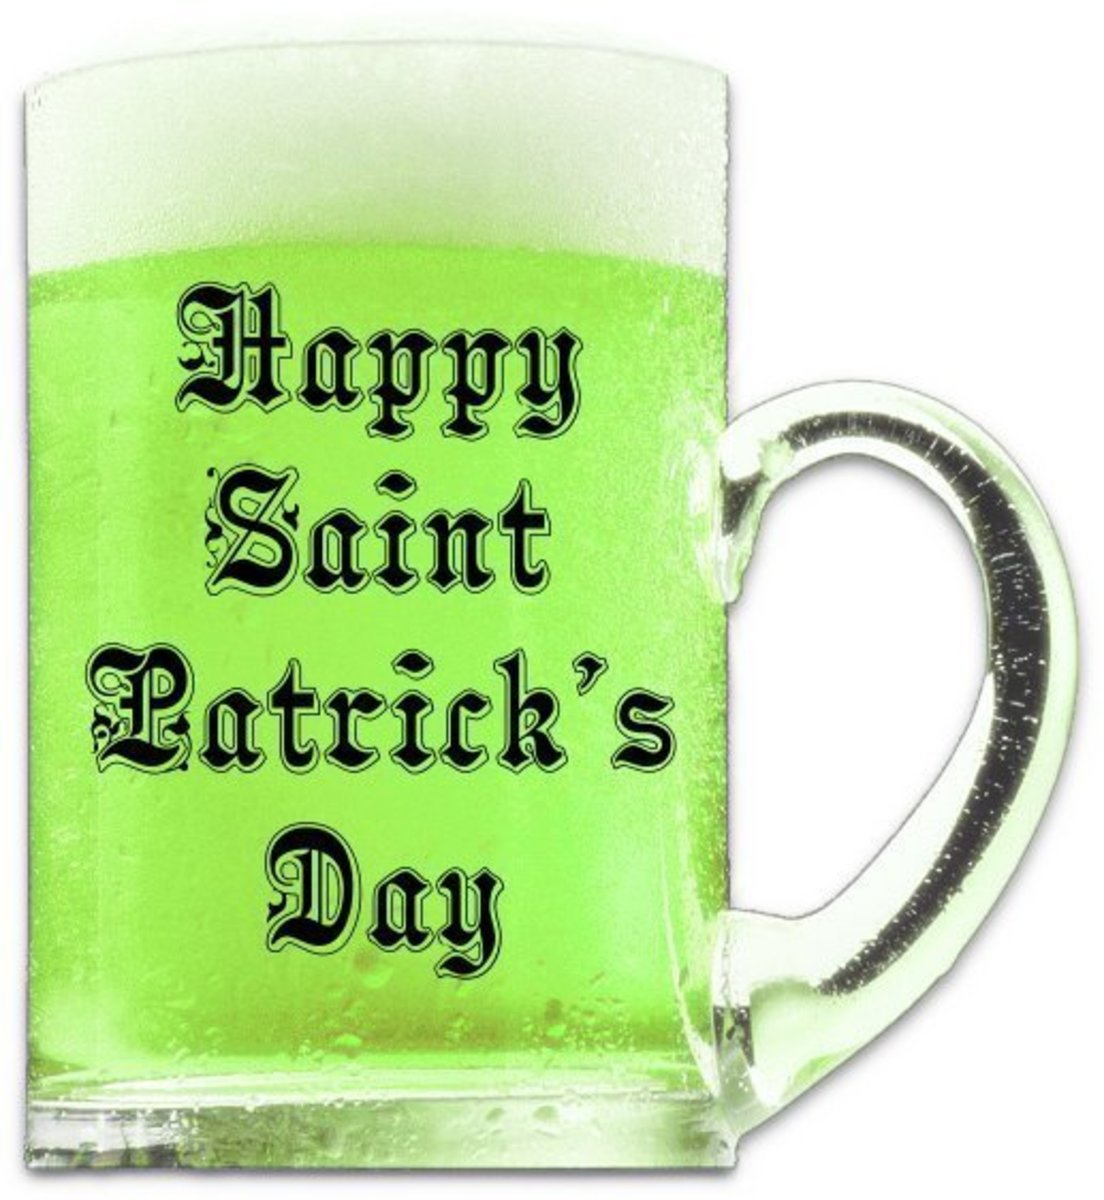 'Happy Saint Patrick's Day' on Mug of Green Beer